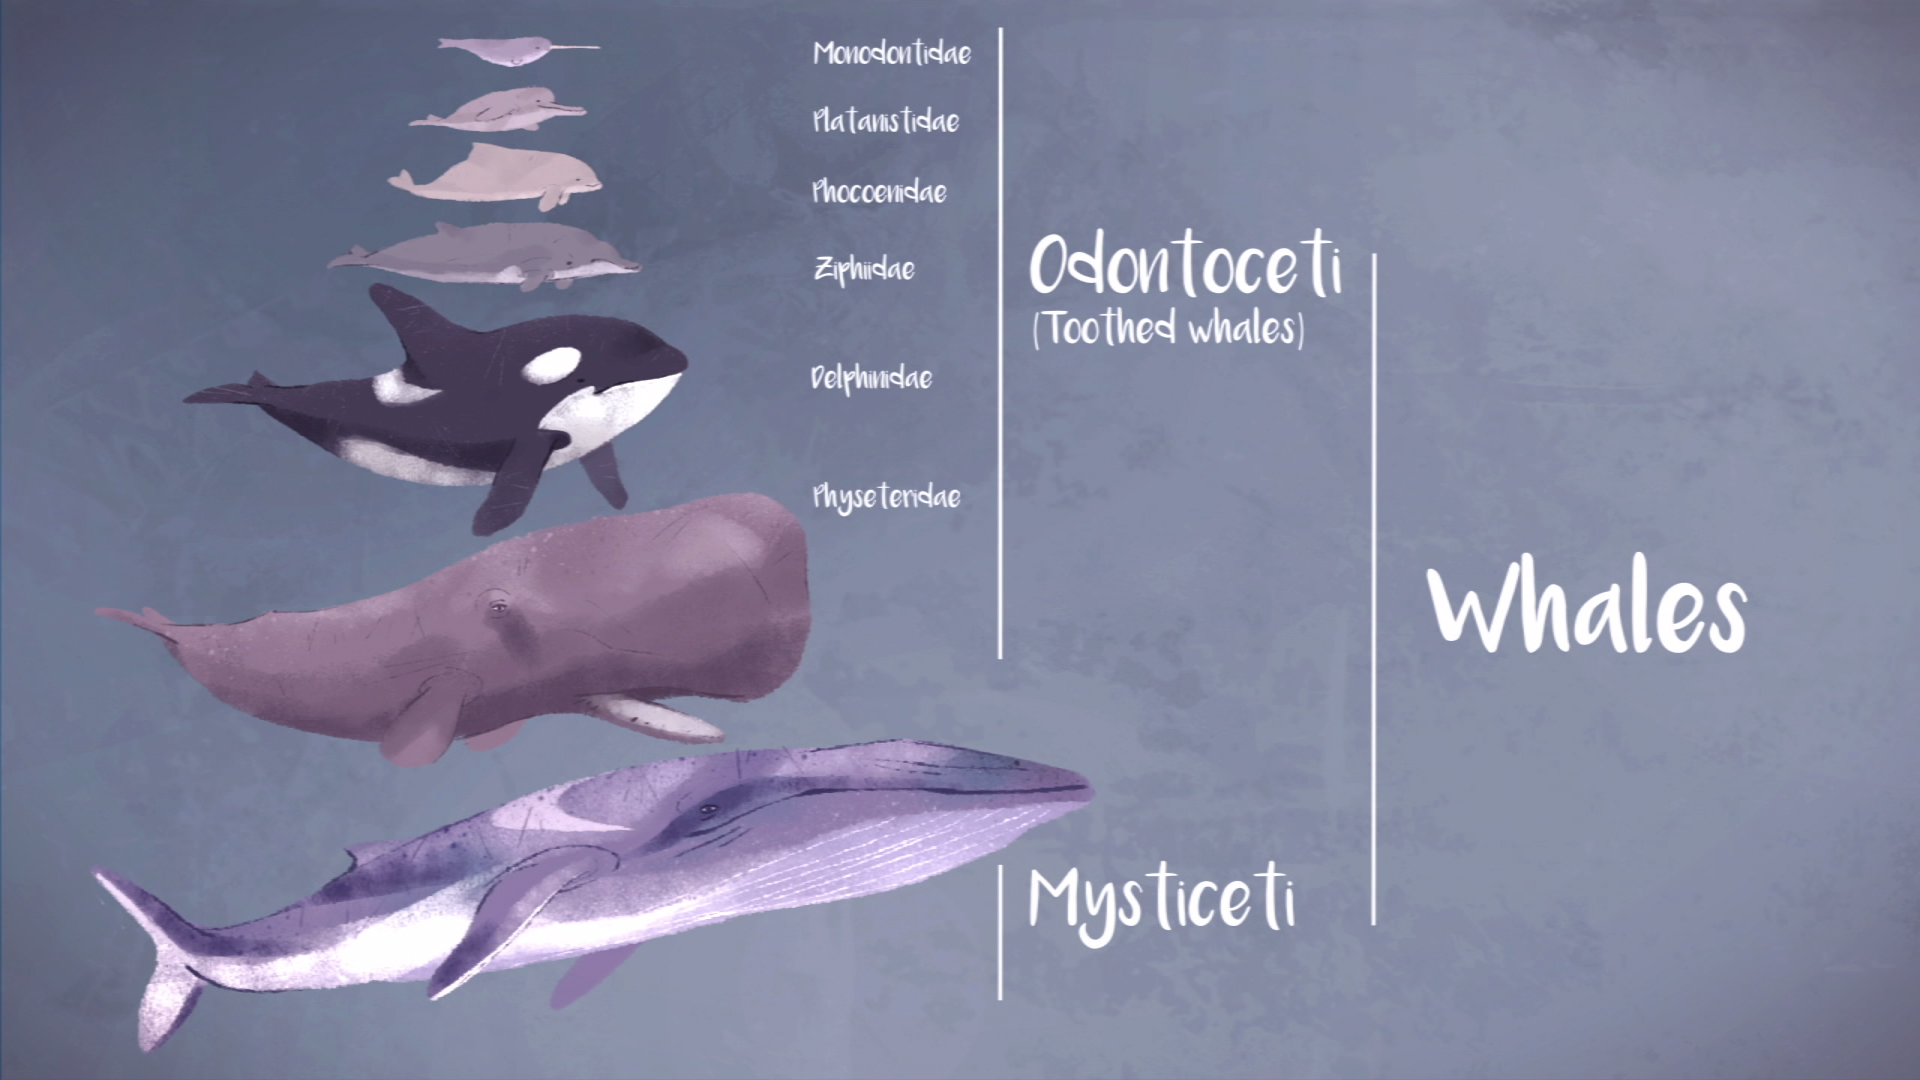 Odontoceti(toothed whales)/Mysticeti